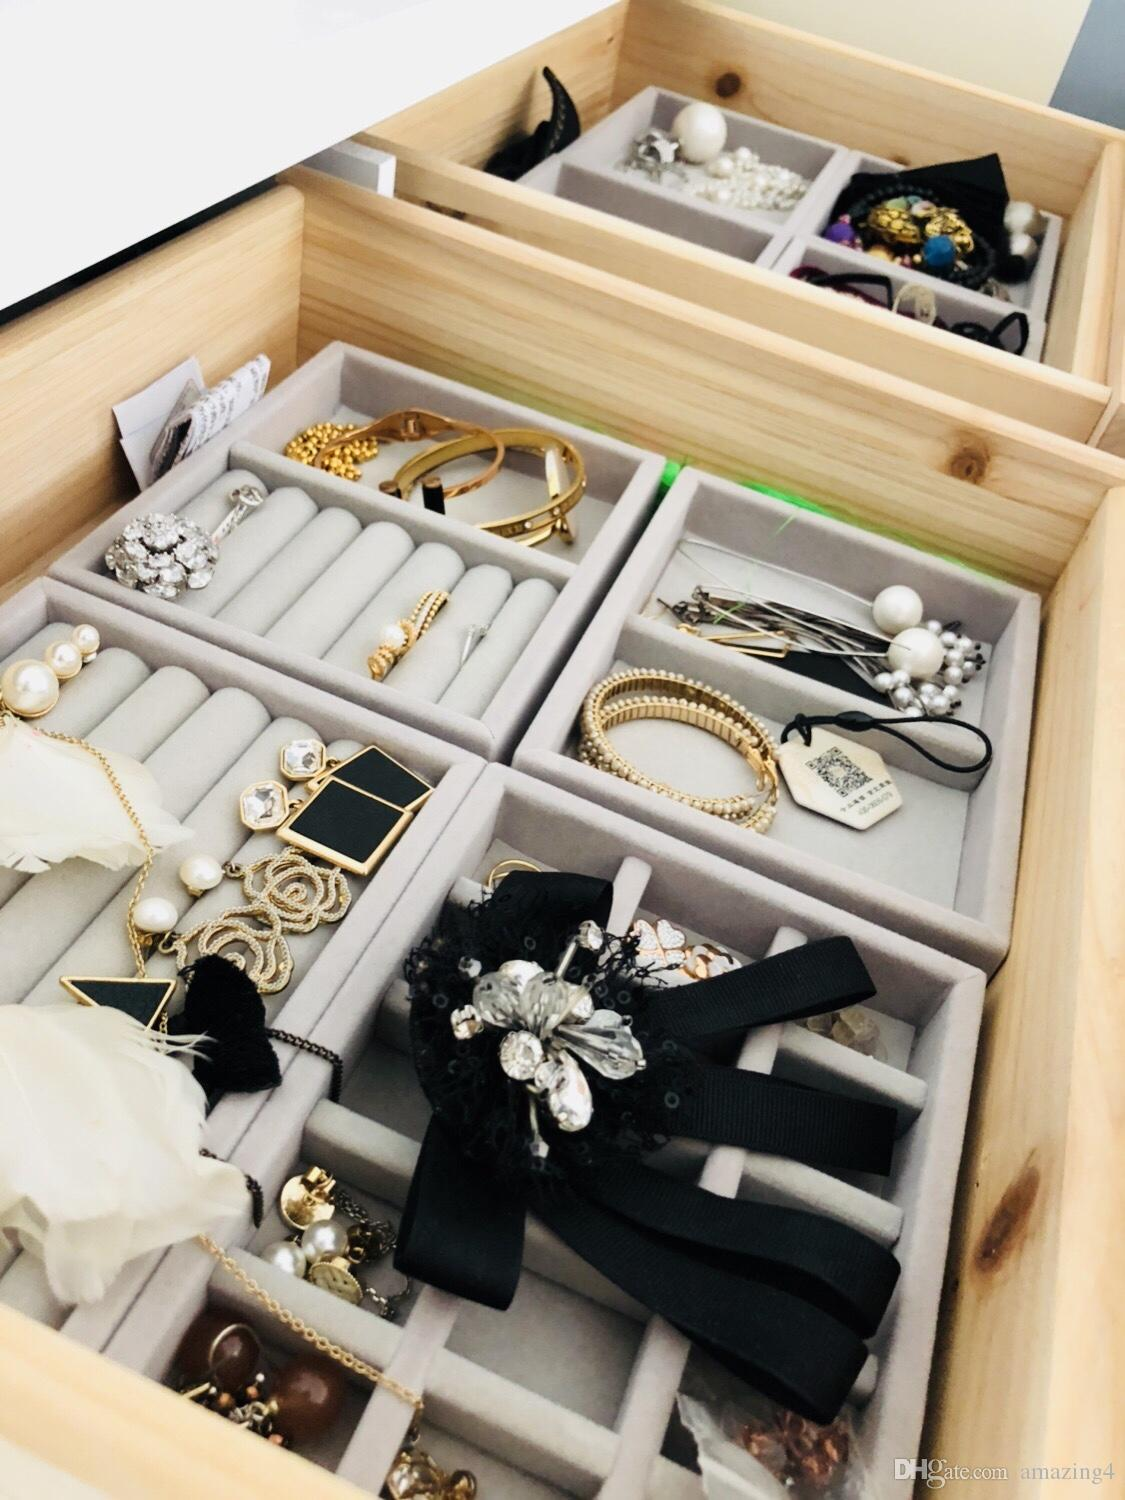 2020 Hot Selling New Drawer Diy Jewelry Storage Tray Ring Bracelet Gift Box Jewellery Organizer Earring Holder Small Size Fit Most Room Space From Amazing4 21 27 Dhgate Com